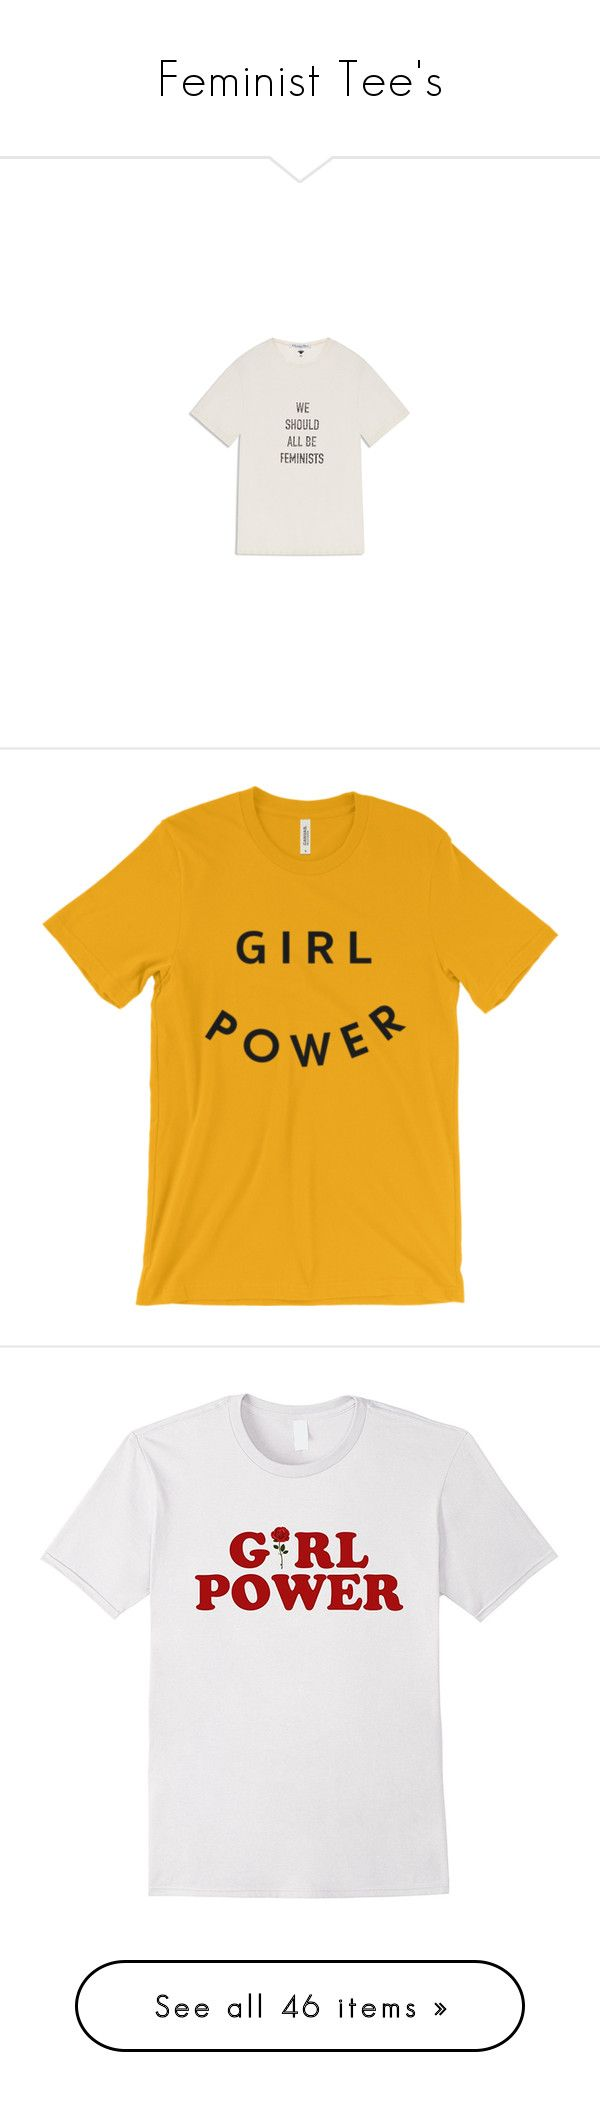 """""""Feminist Tee's"""" by tynabrookler ❤ liked on Polyvore featuring tops, t-shirts, yellow top, mustard yellow top, unisex tops, yellow t shirt, mustard top, shirts, tees and rose t shirt"""